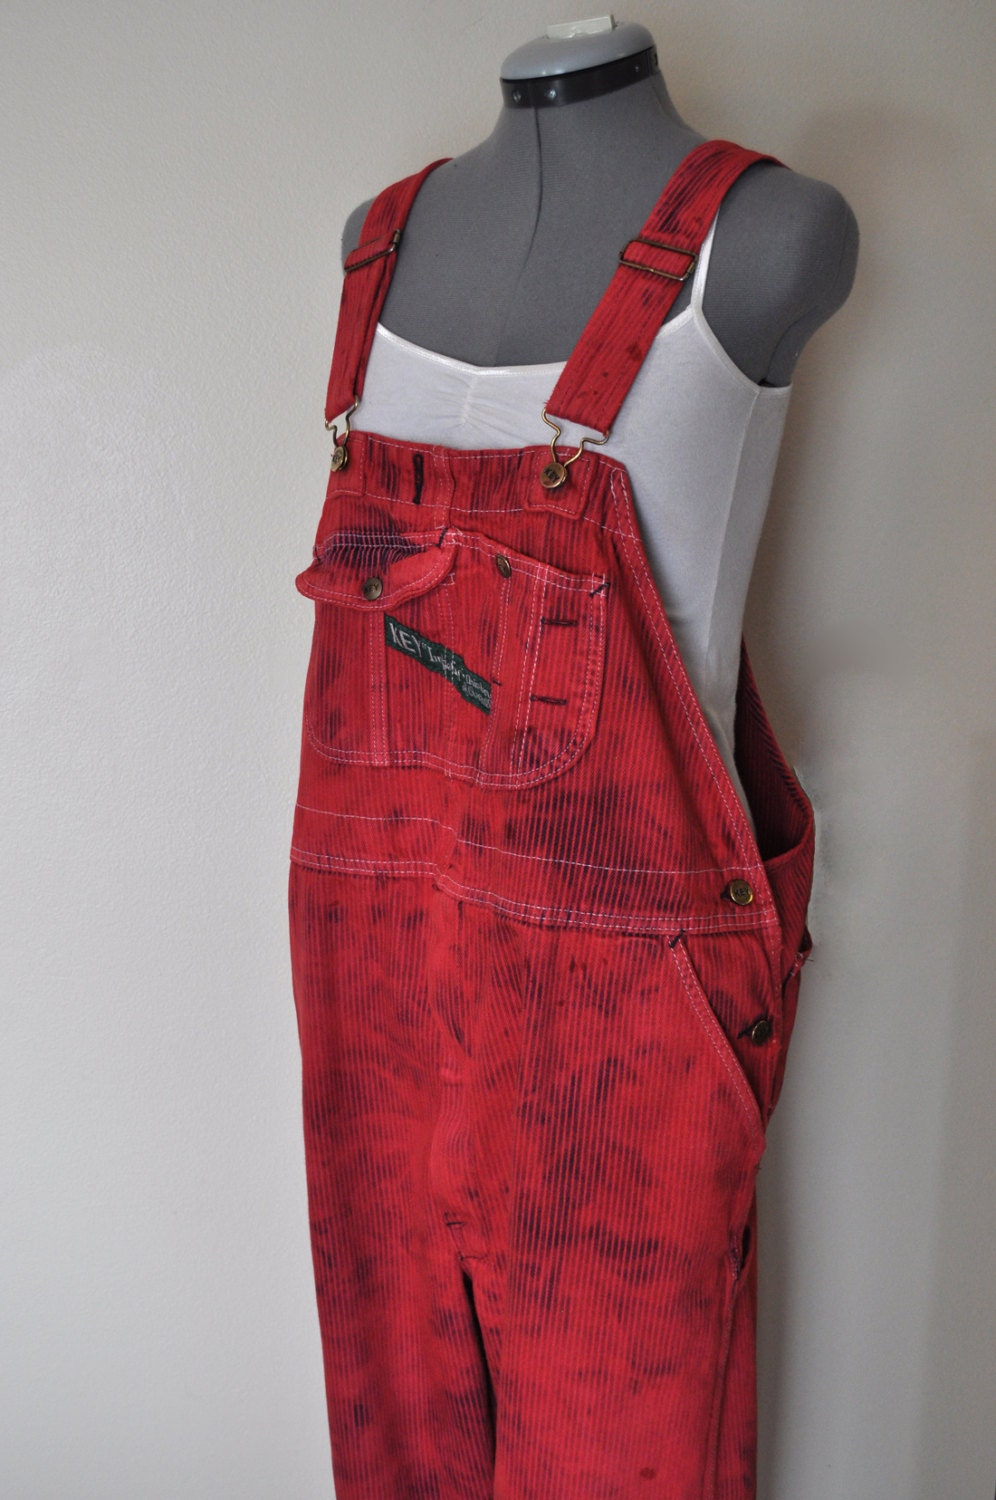 Dyed Bib Overalls Hand Dyed Red Key Imperial Pin Stripe